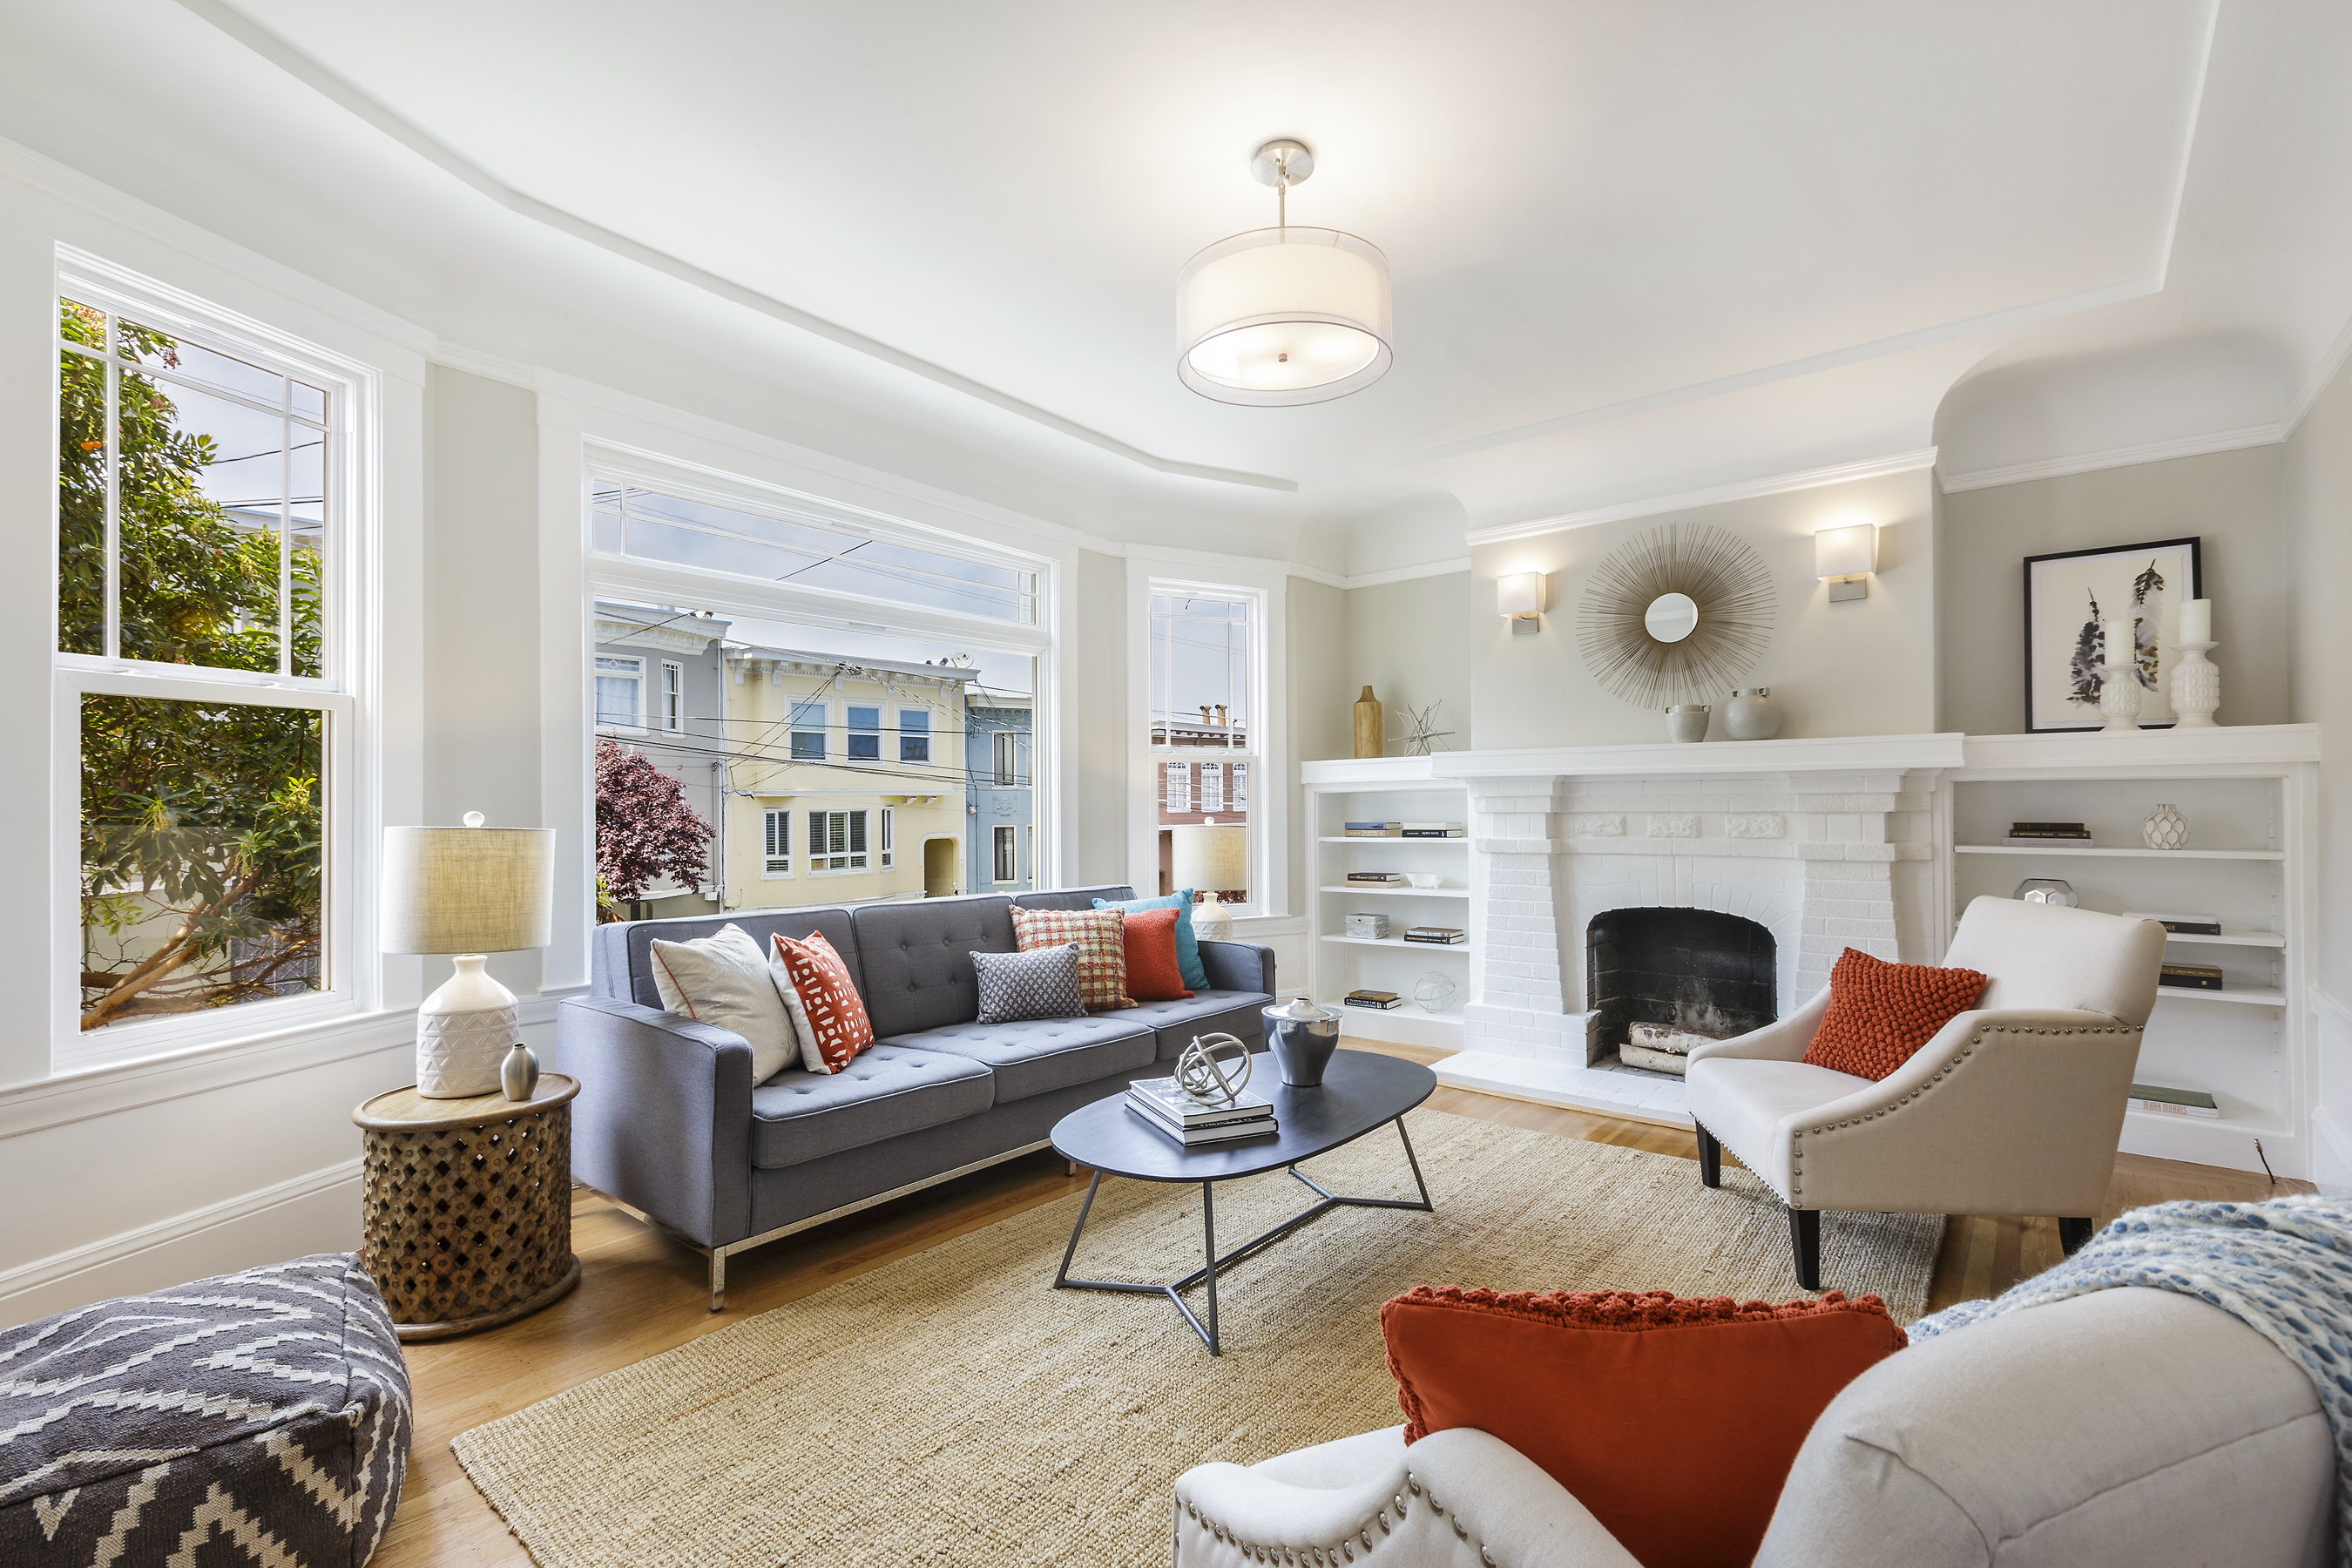 For Sale | 754 18th Ave | Central Richmond Edwardian | $1,095,000